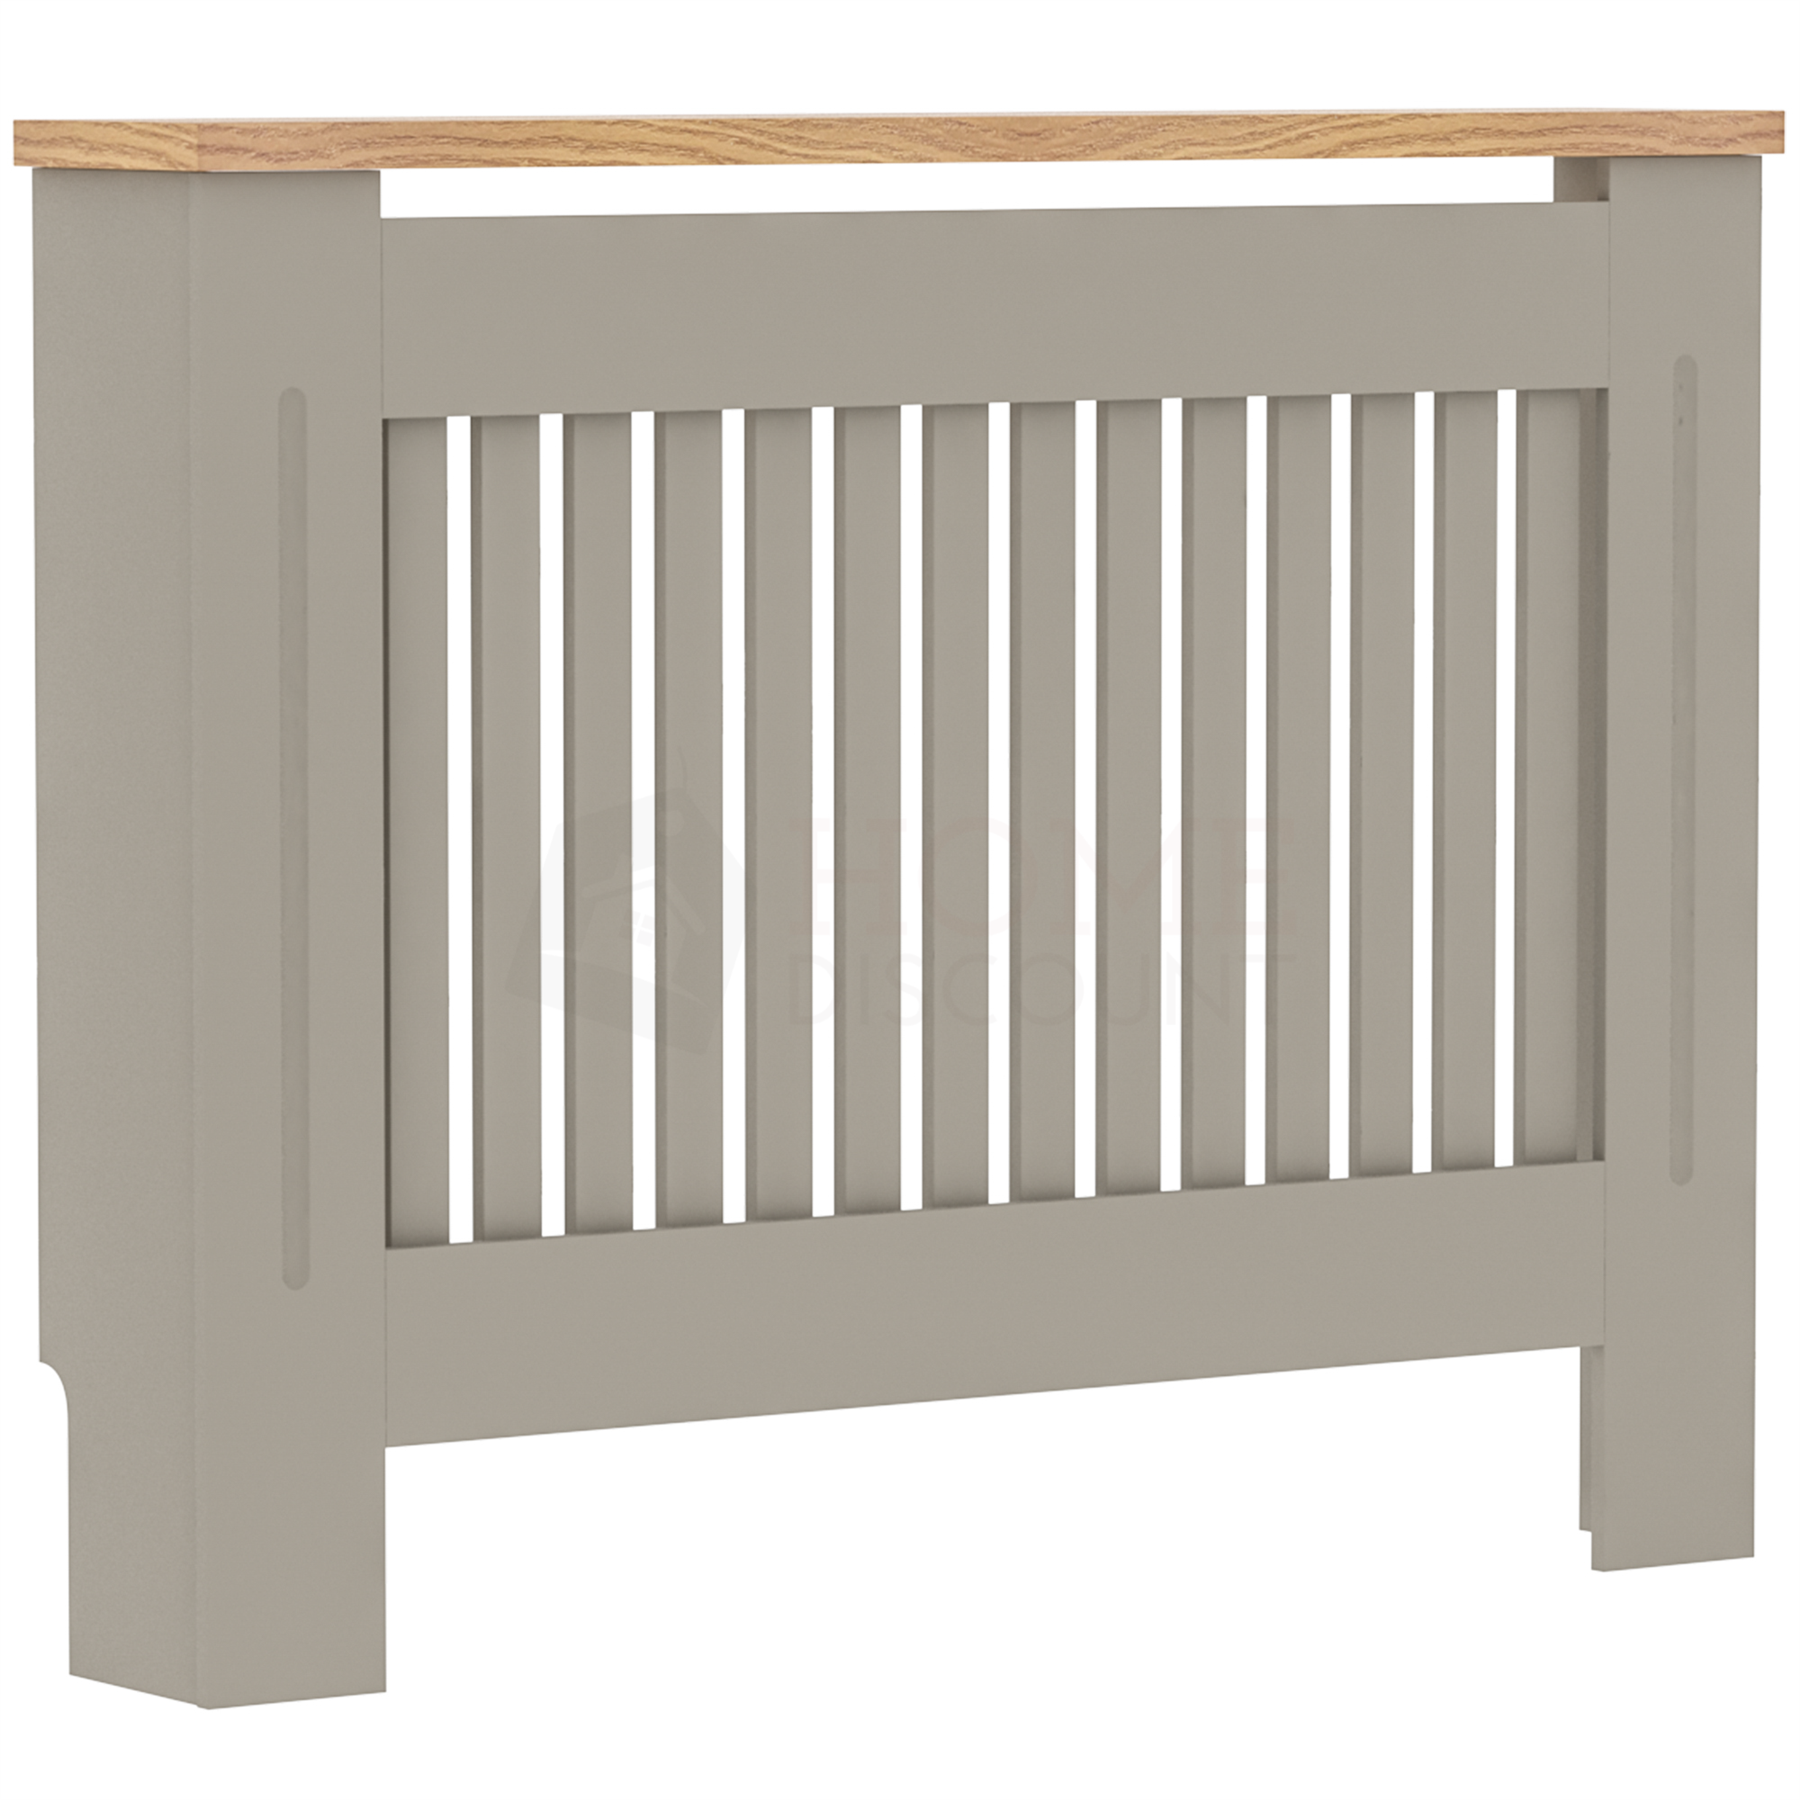 thumbnail 49 - Radiator Cover White Unfinished Modern Traditional Wood Grill Cabinet Furniture